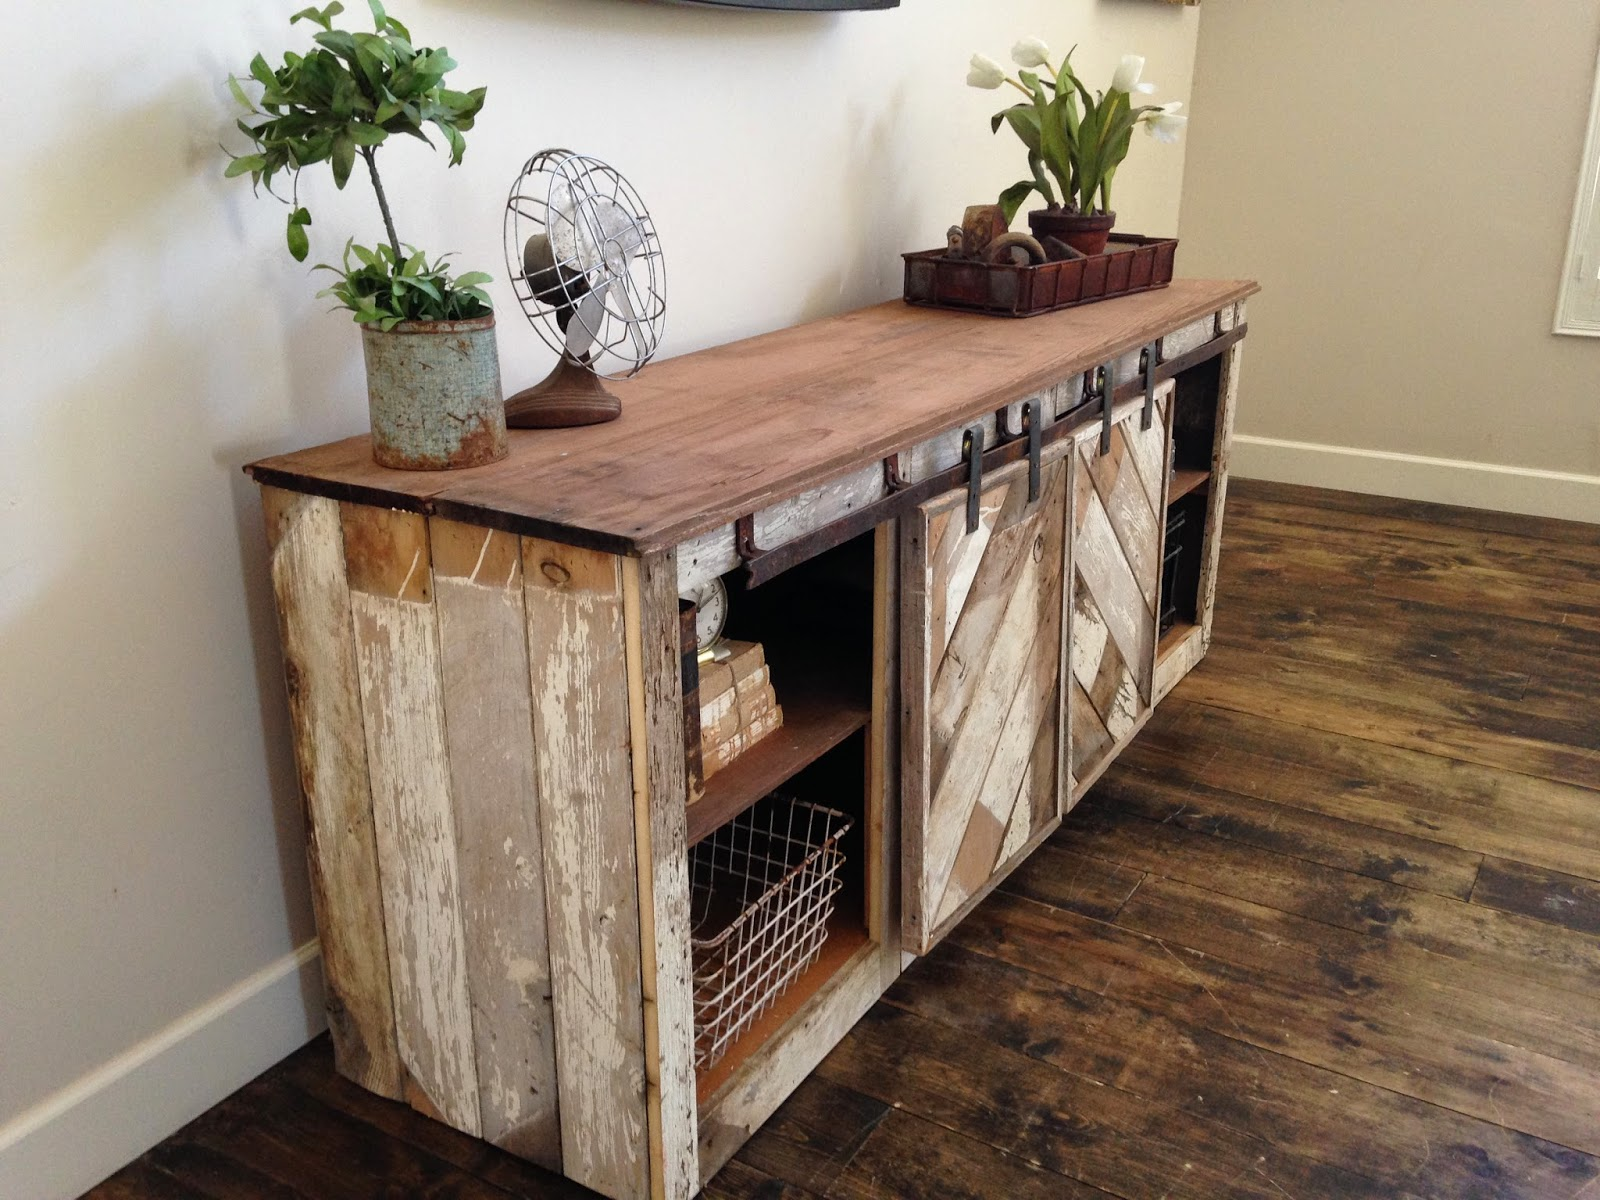 ana white grandy sliding door console diy projects accent table with doors rustic distressed barn furniture buffet cabinet chic coffee miniature lamps pottery frog drum couch legs